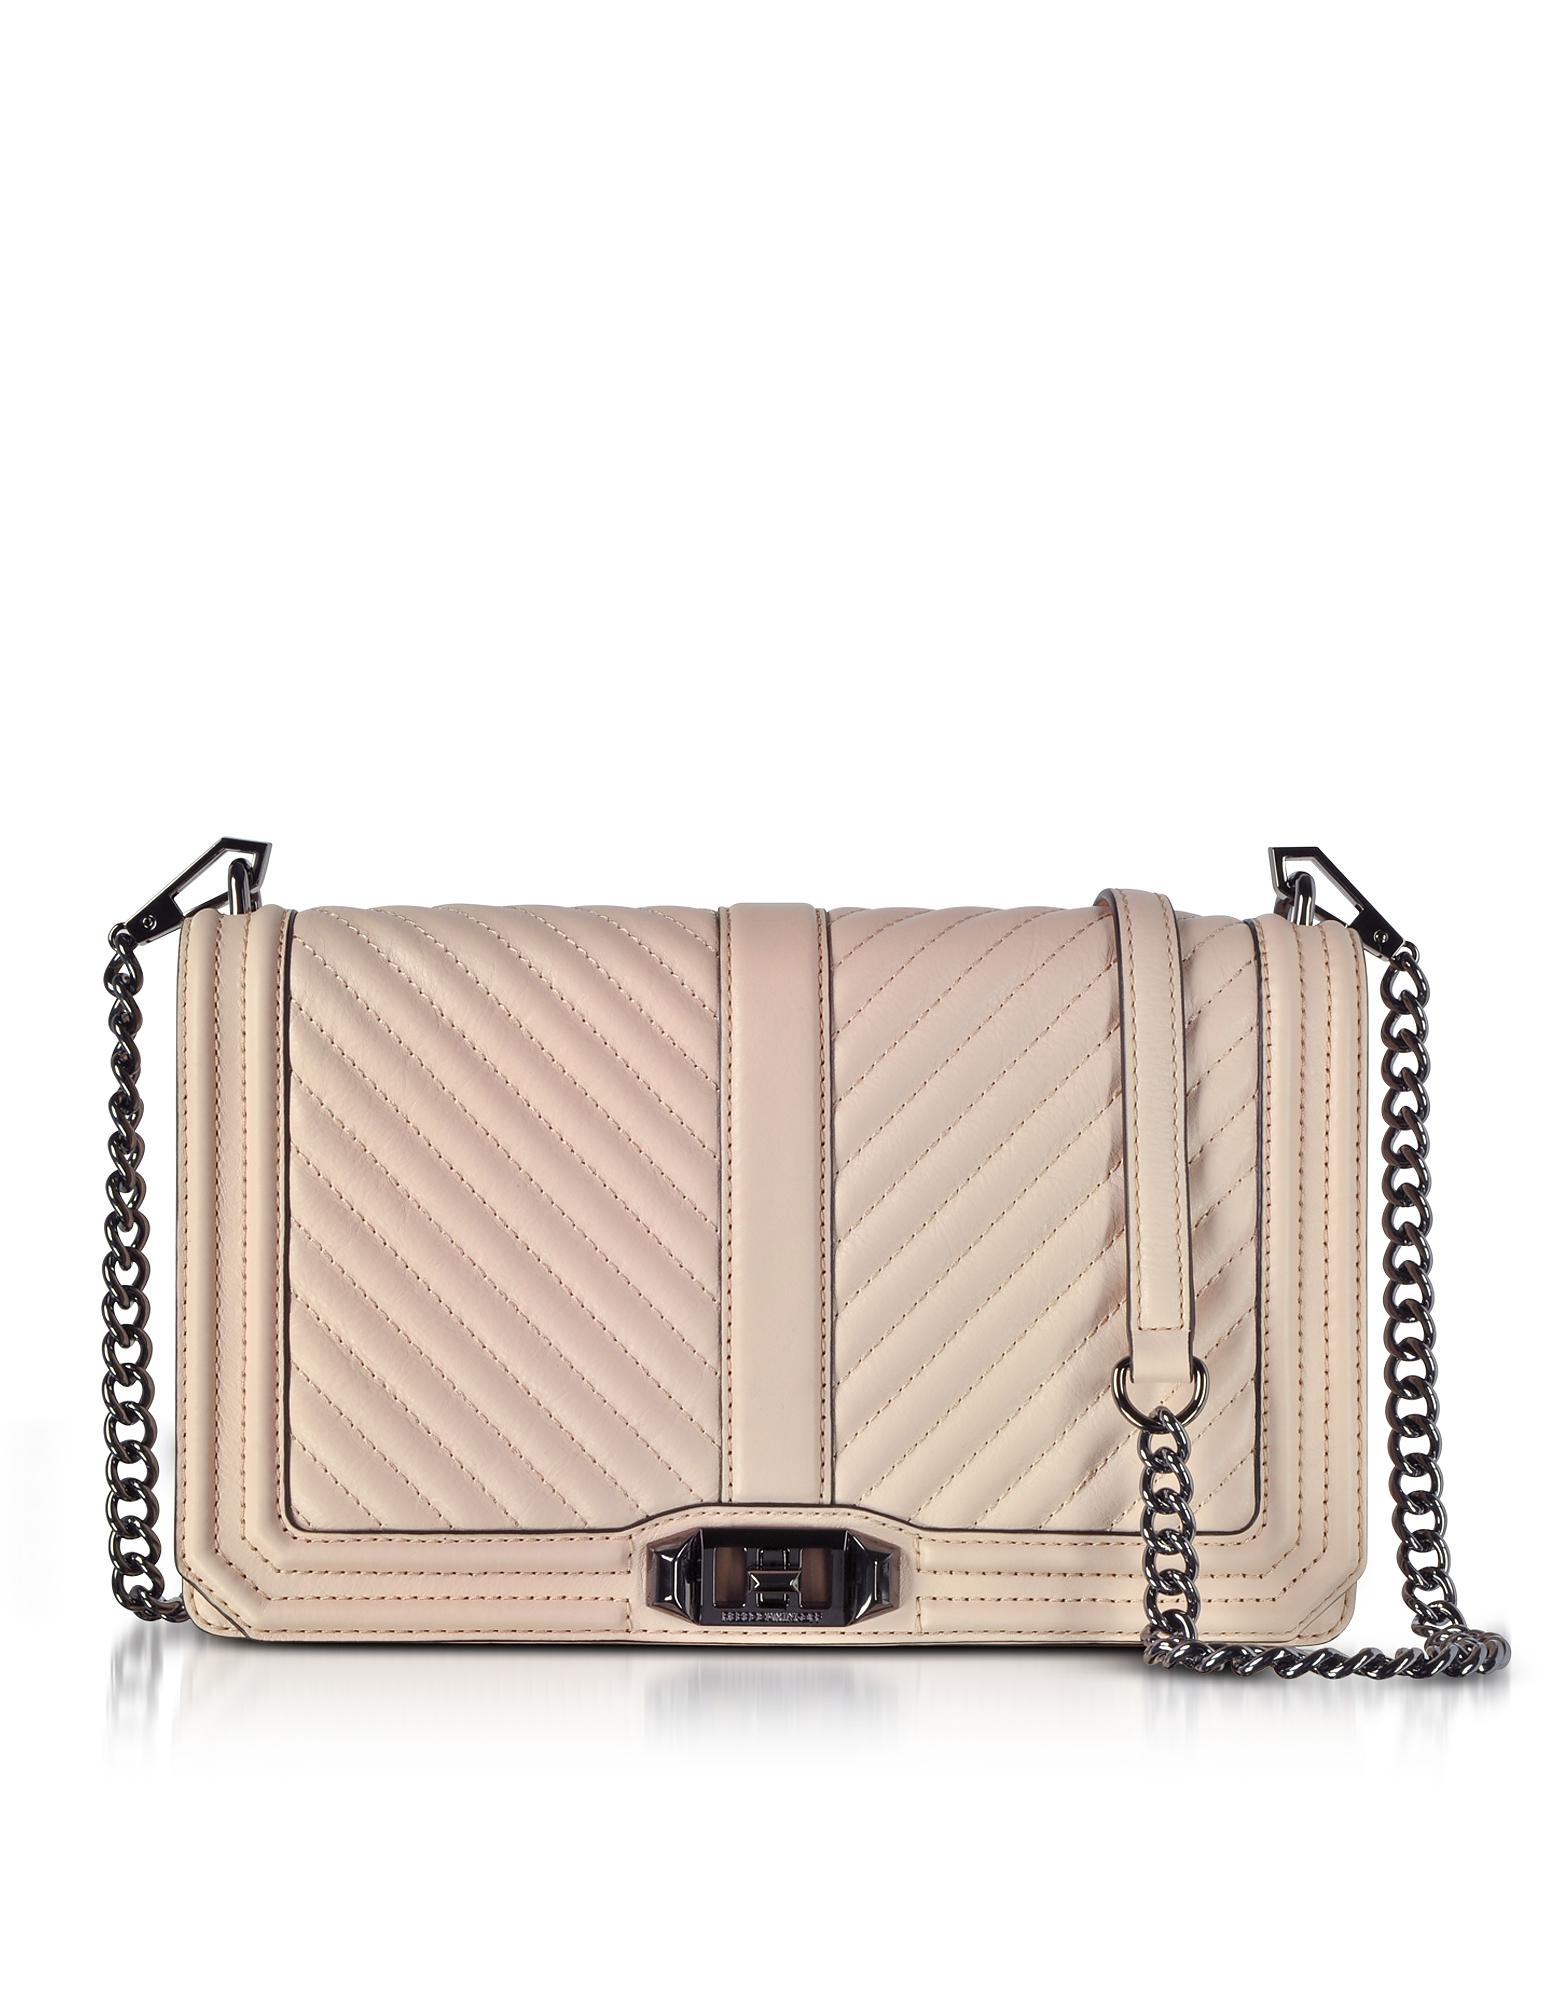 3fe7903252 Lyst - Rebecca Minkoff Nude Chevron Quilted Leather Slim Love ...